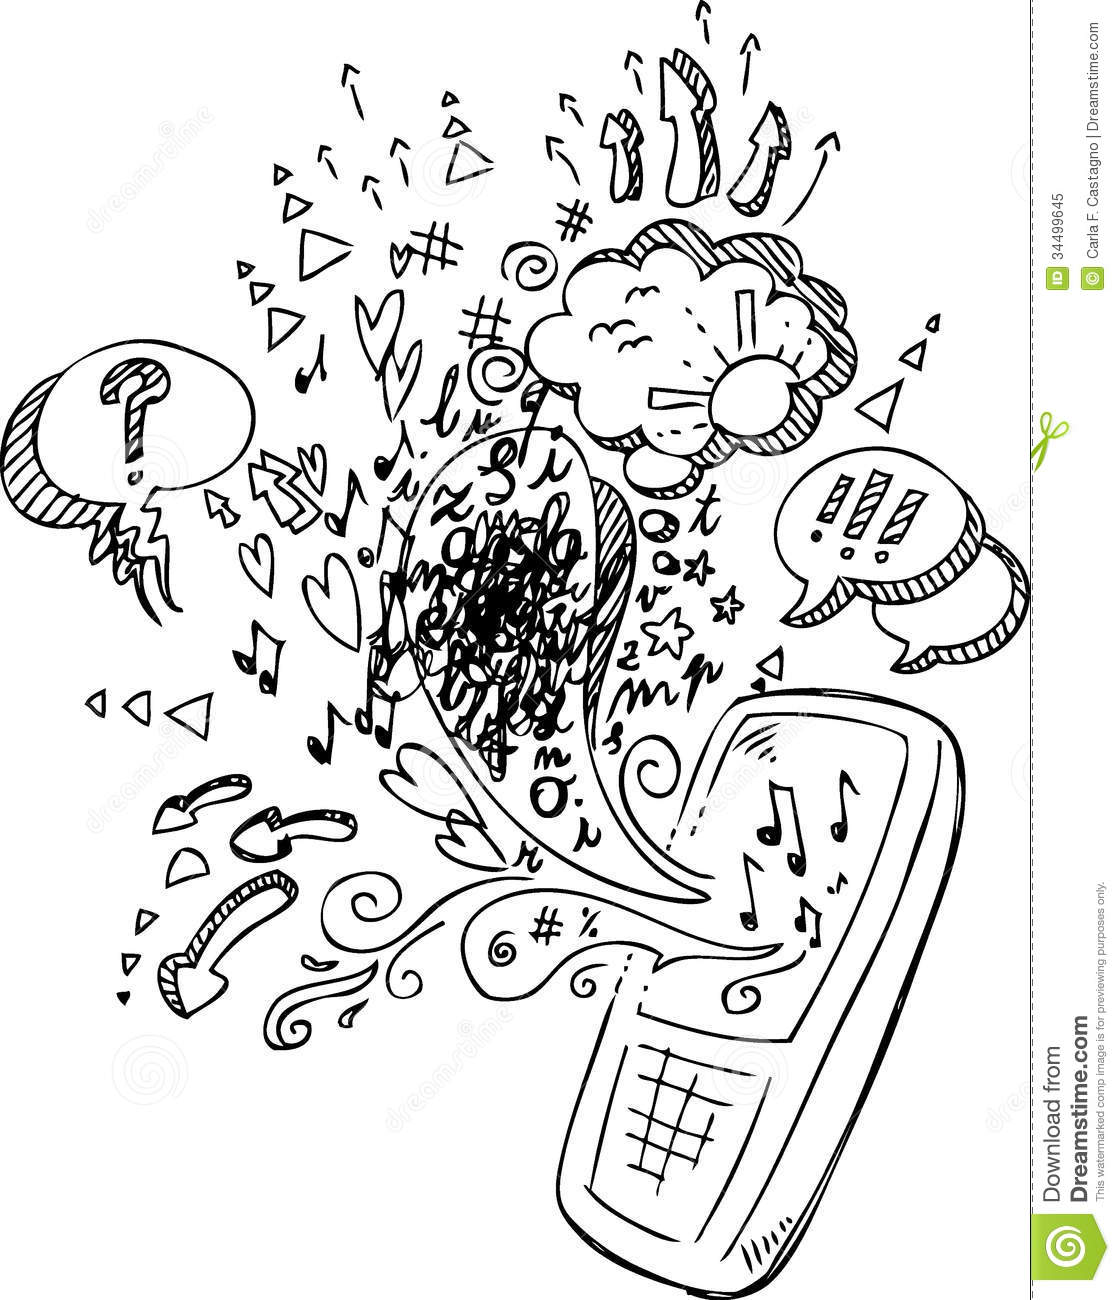 phone sketchy doodles coloring vector royalty free stock